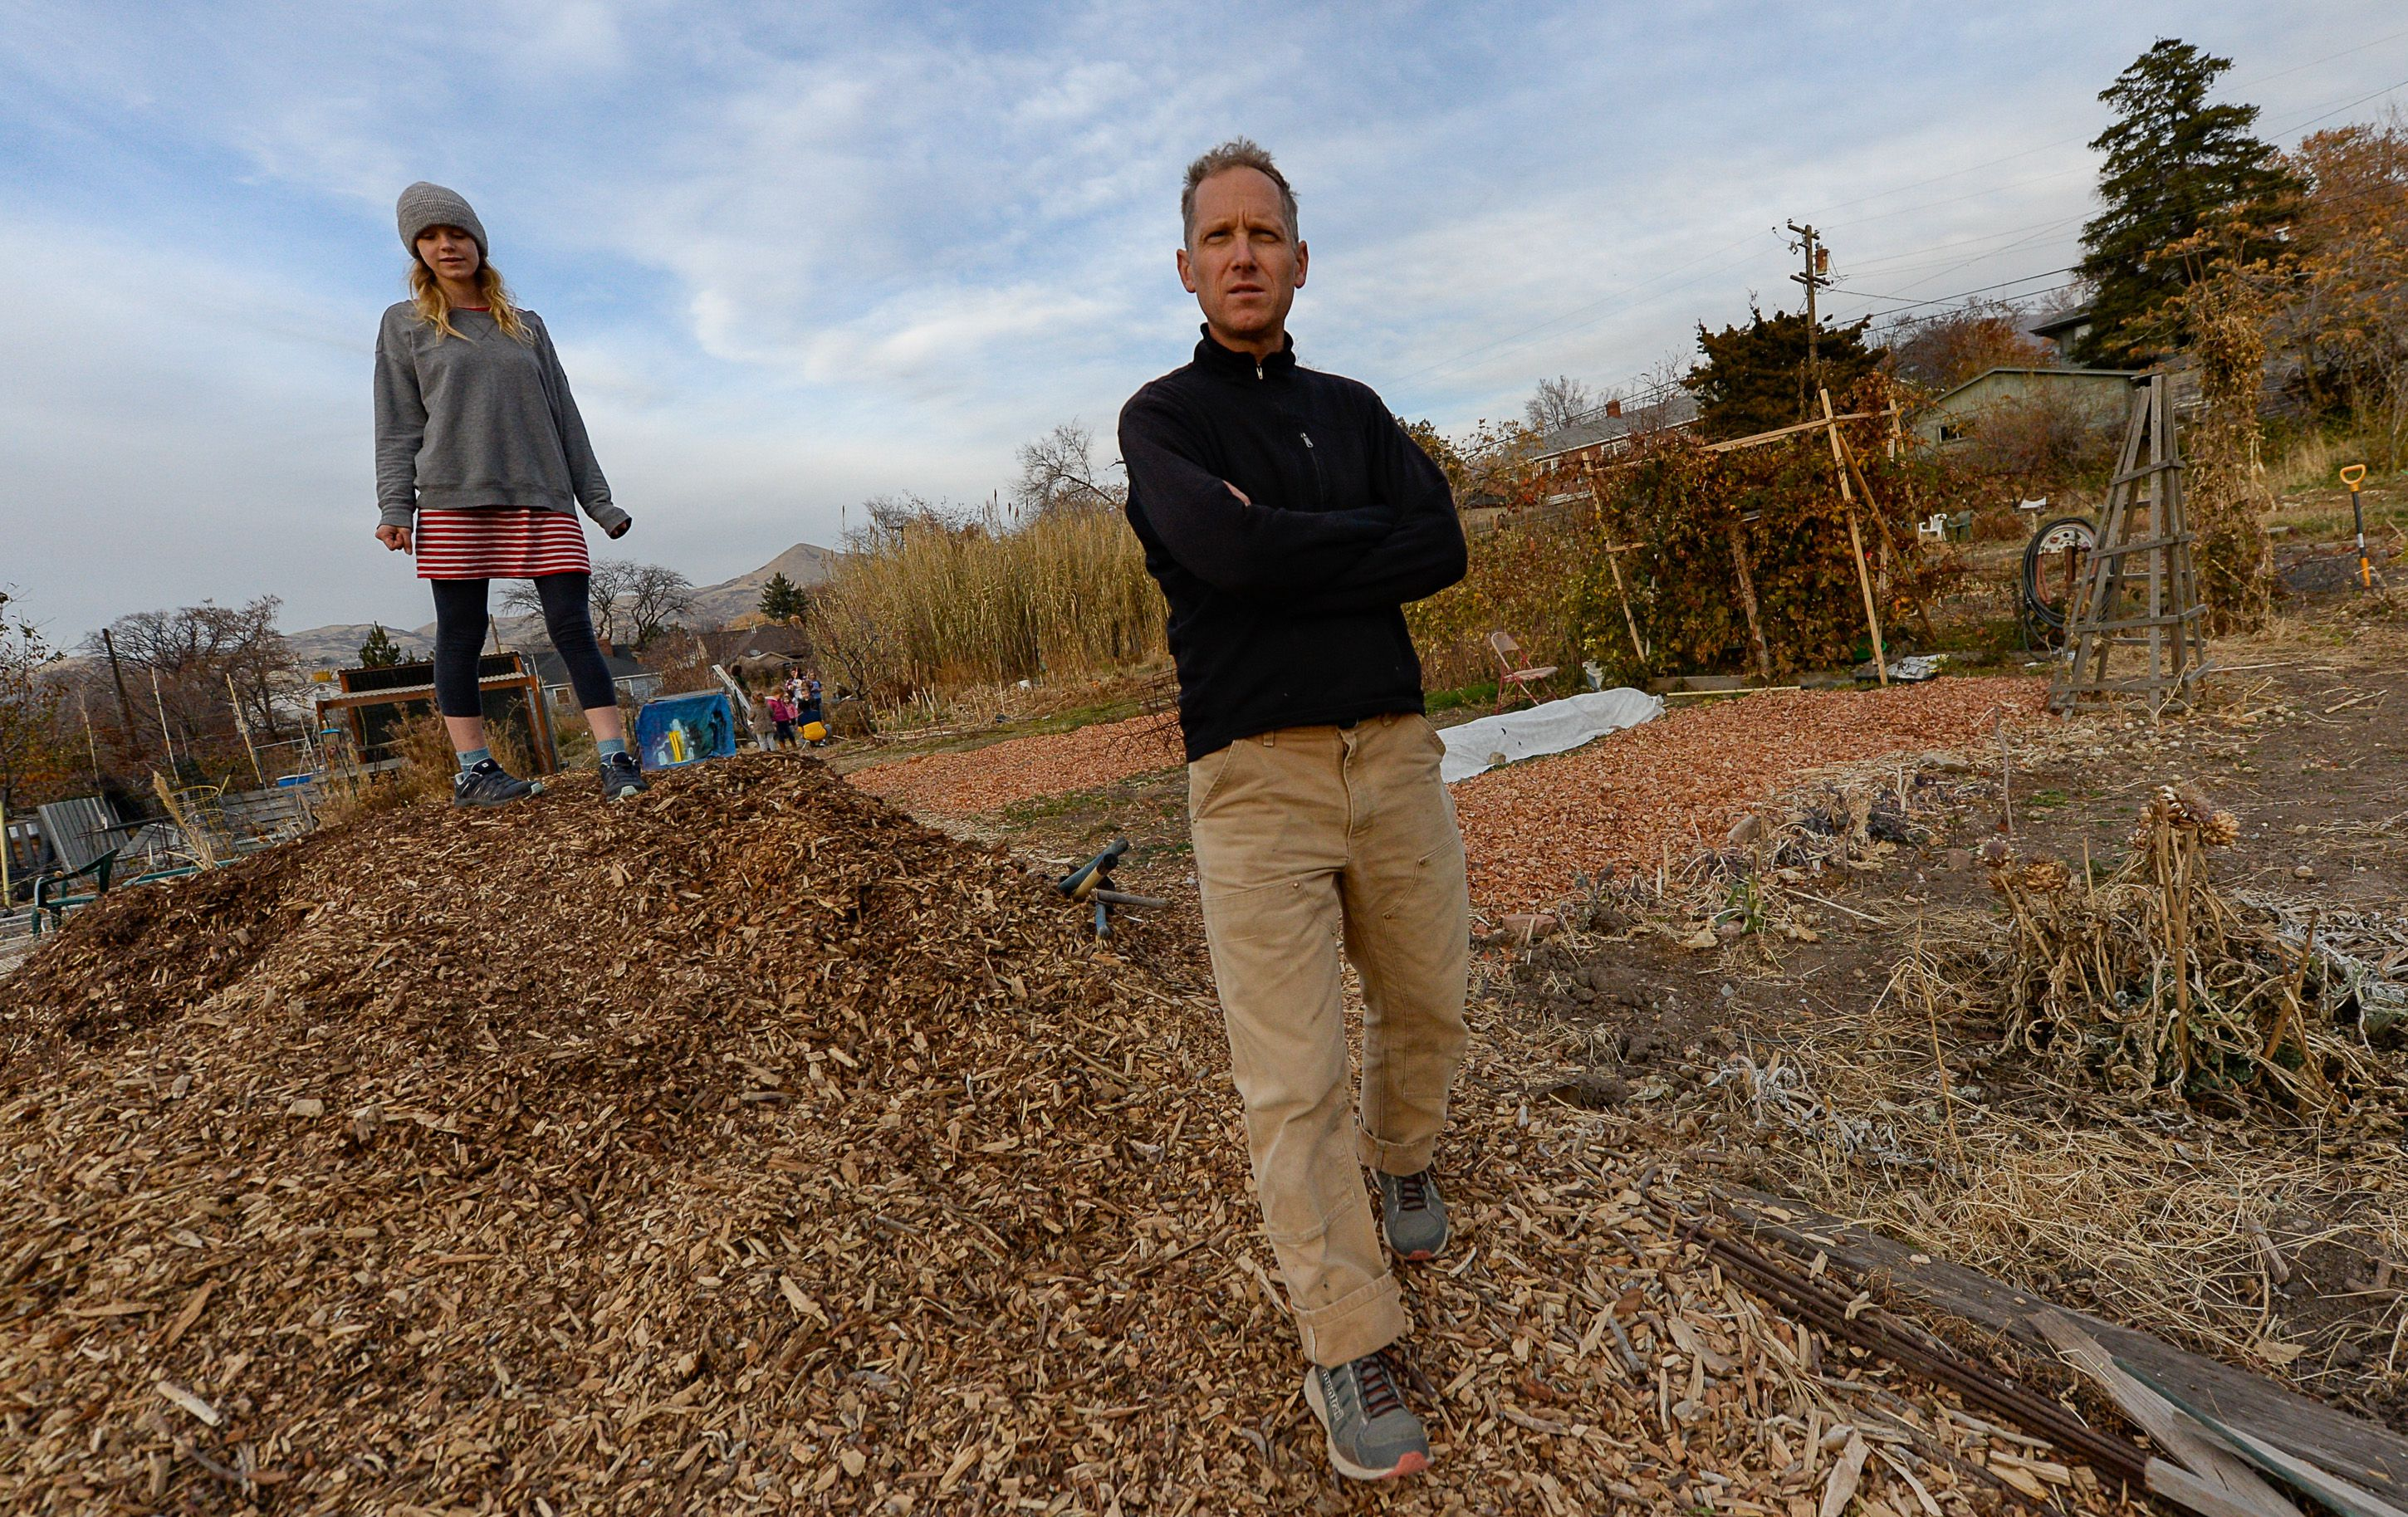 LDS leaders want to turn community garden into parking lot. Neighbors are fighting back.